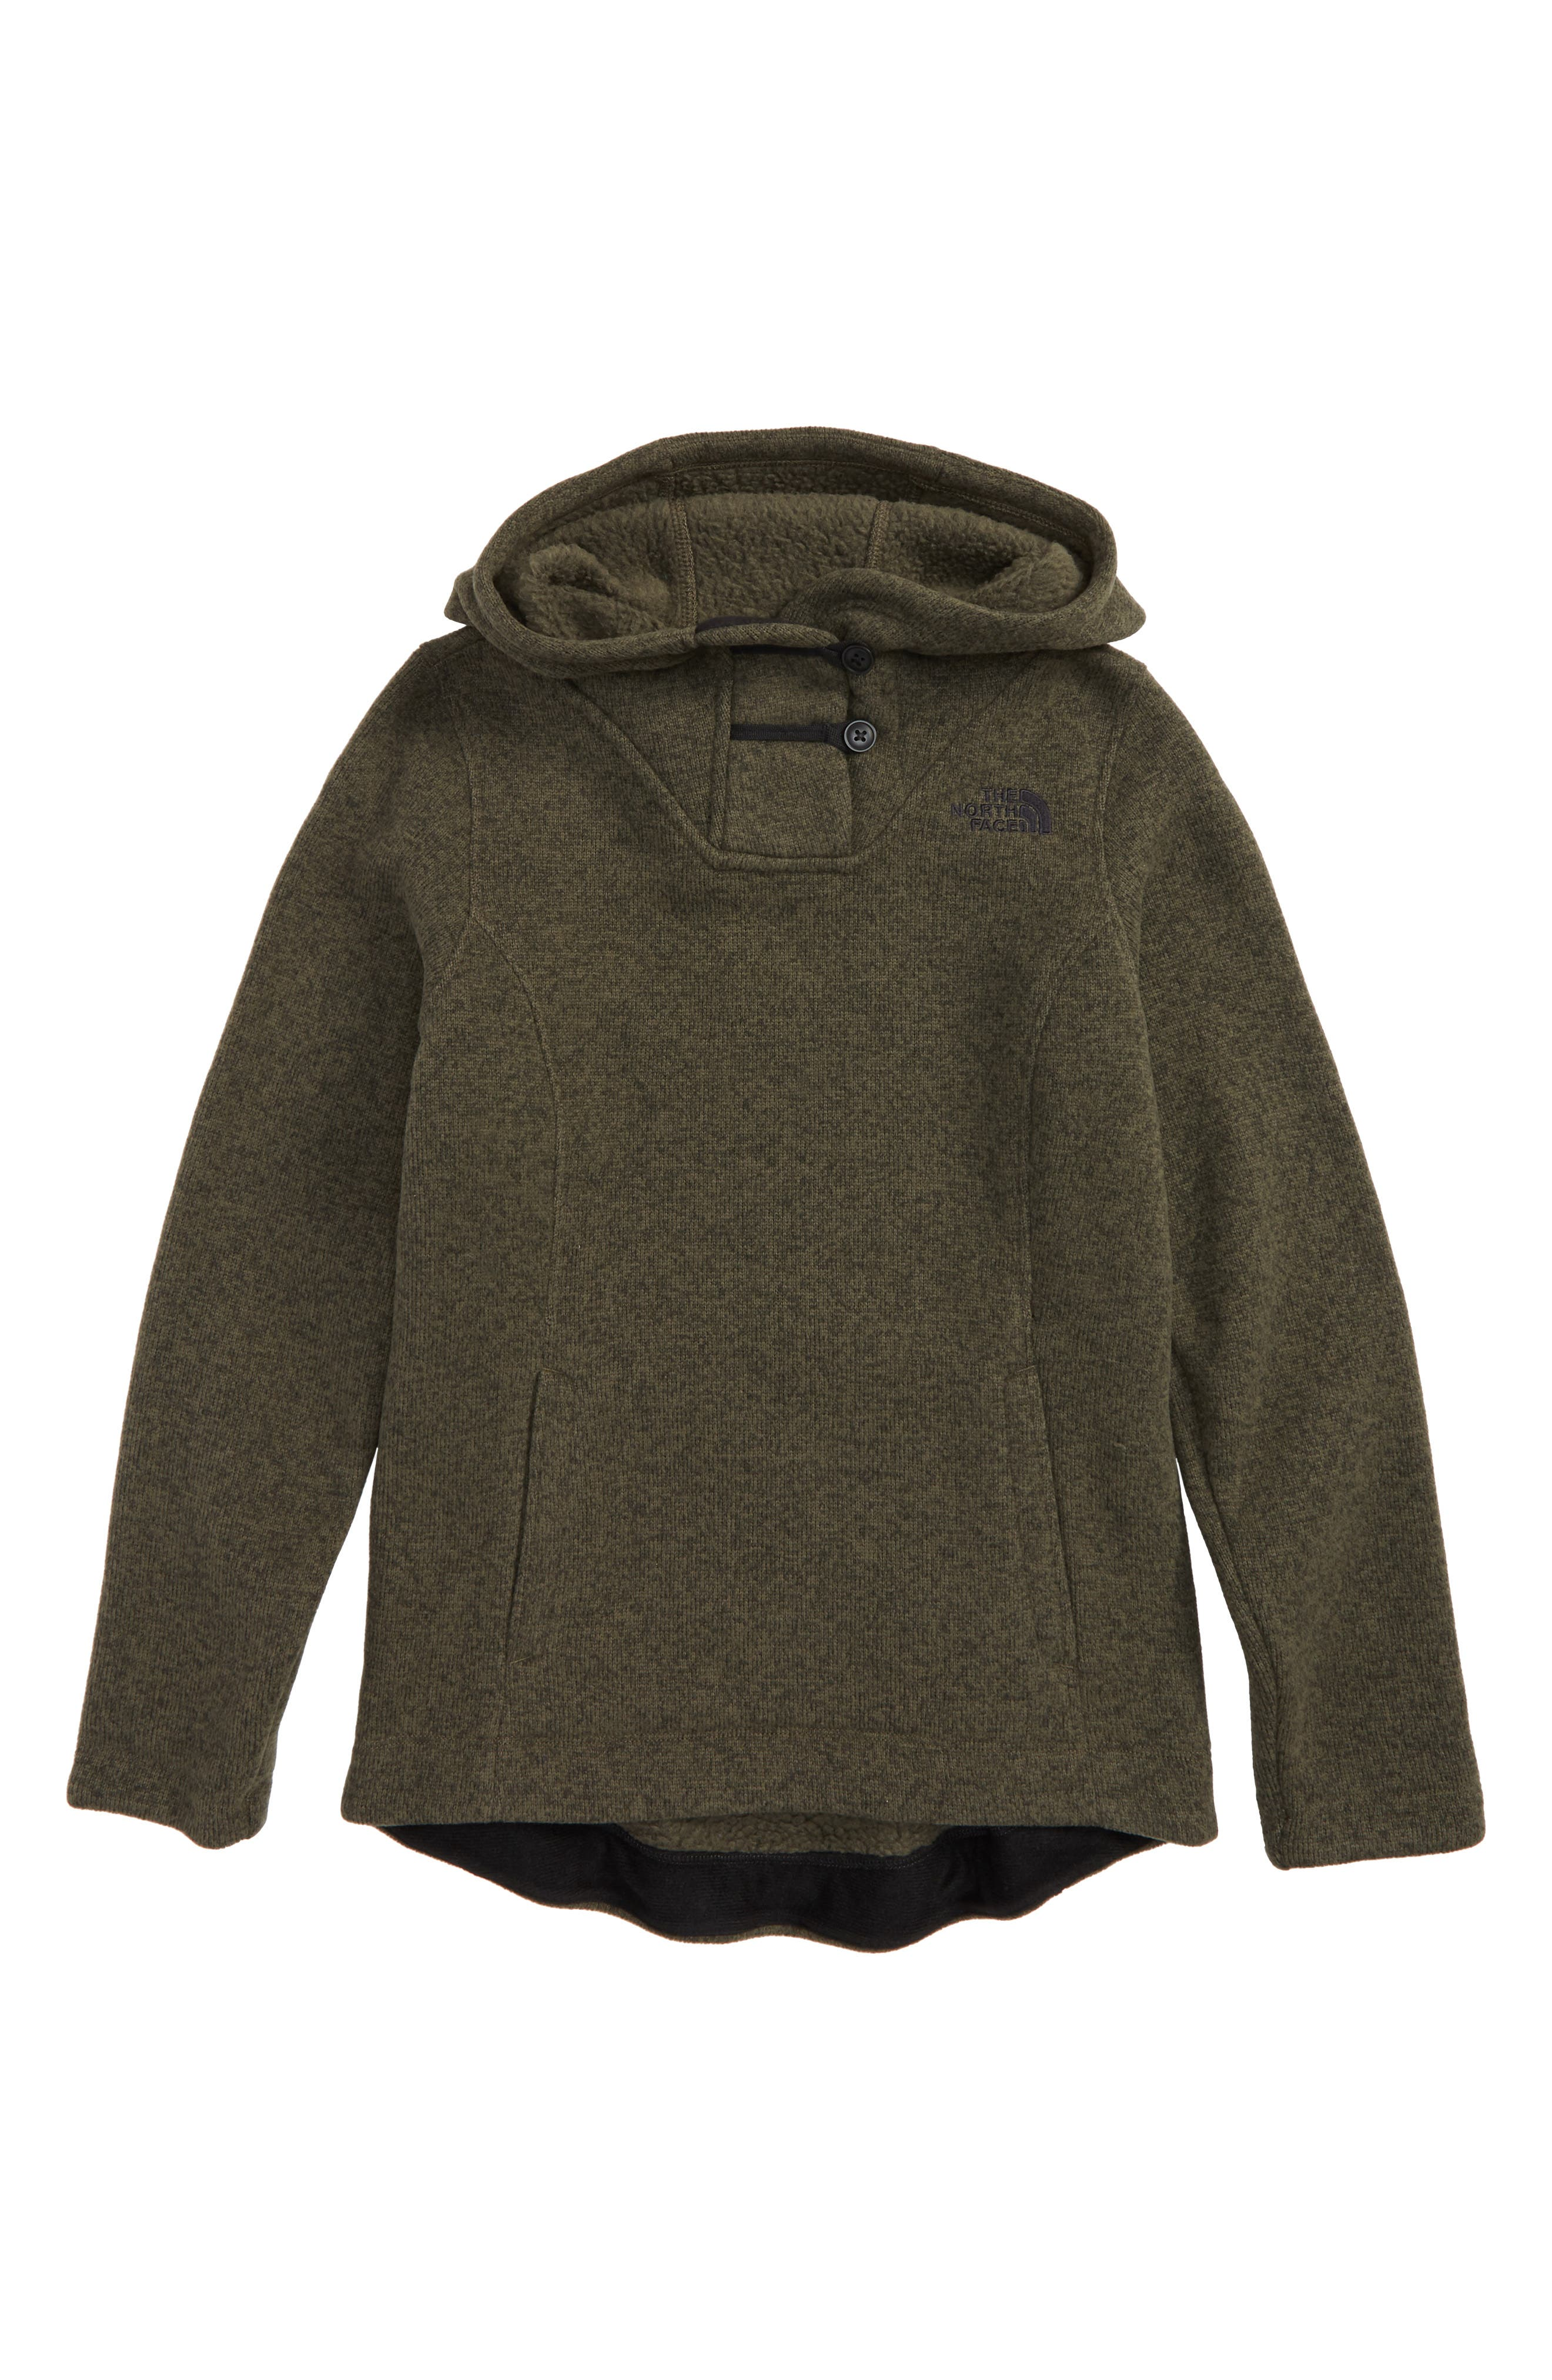 Crescent Sunset Hoodie,                         Main,                         color, Taupe Green Heather